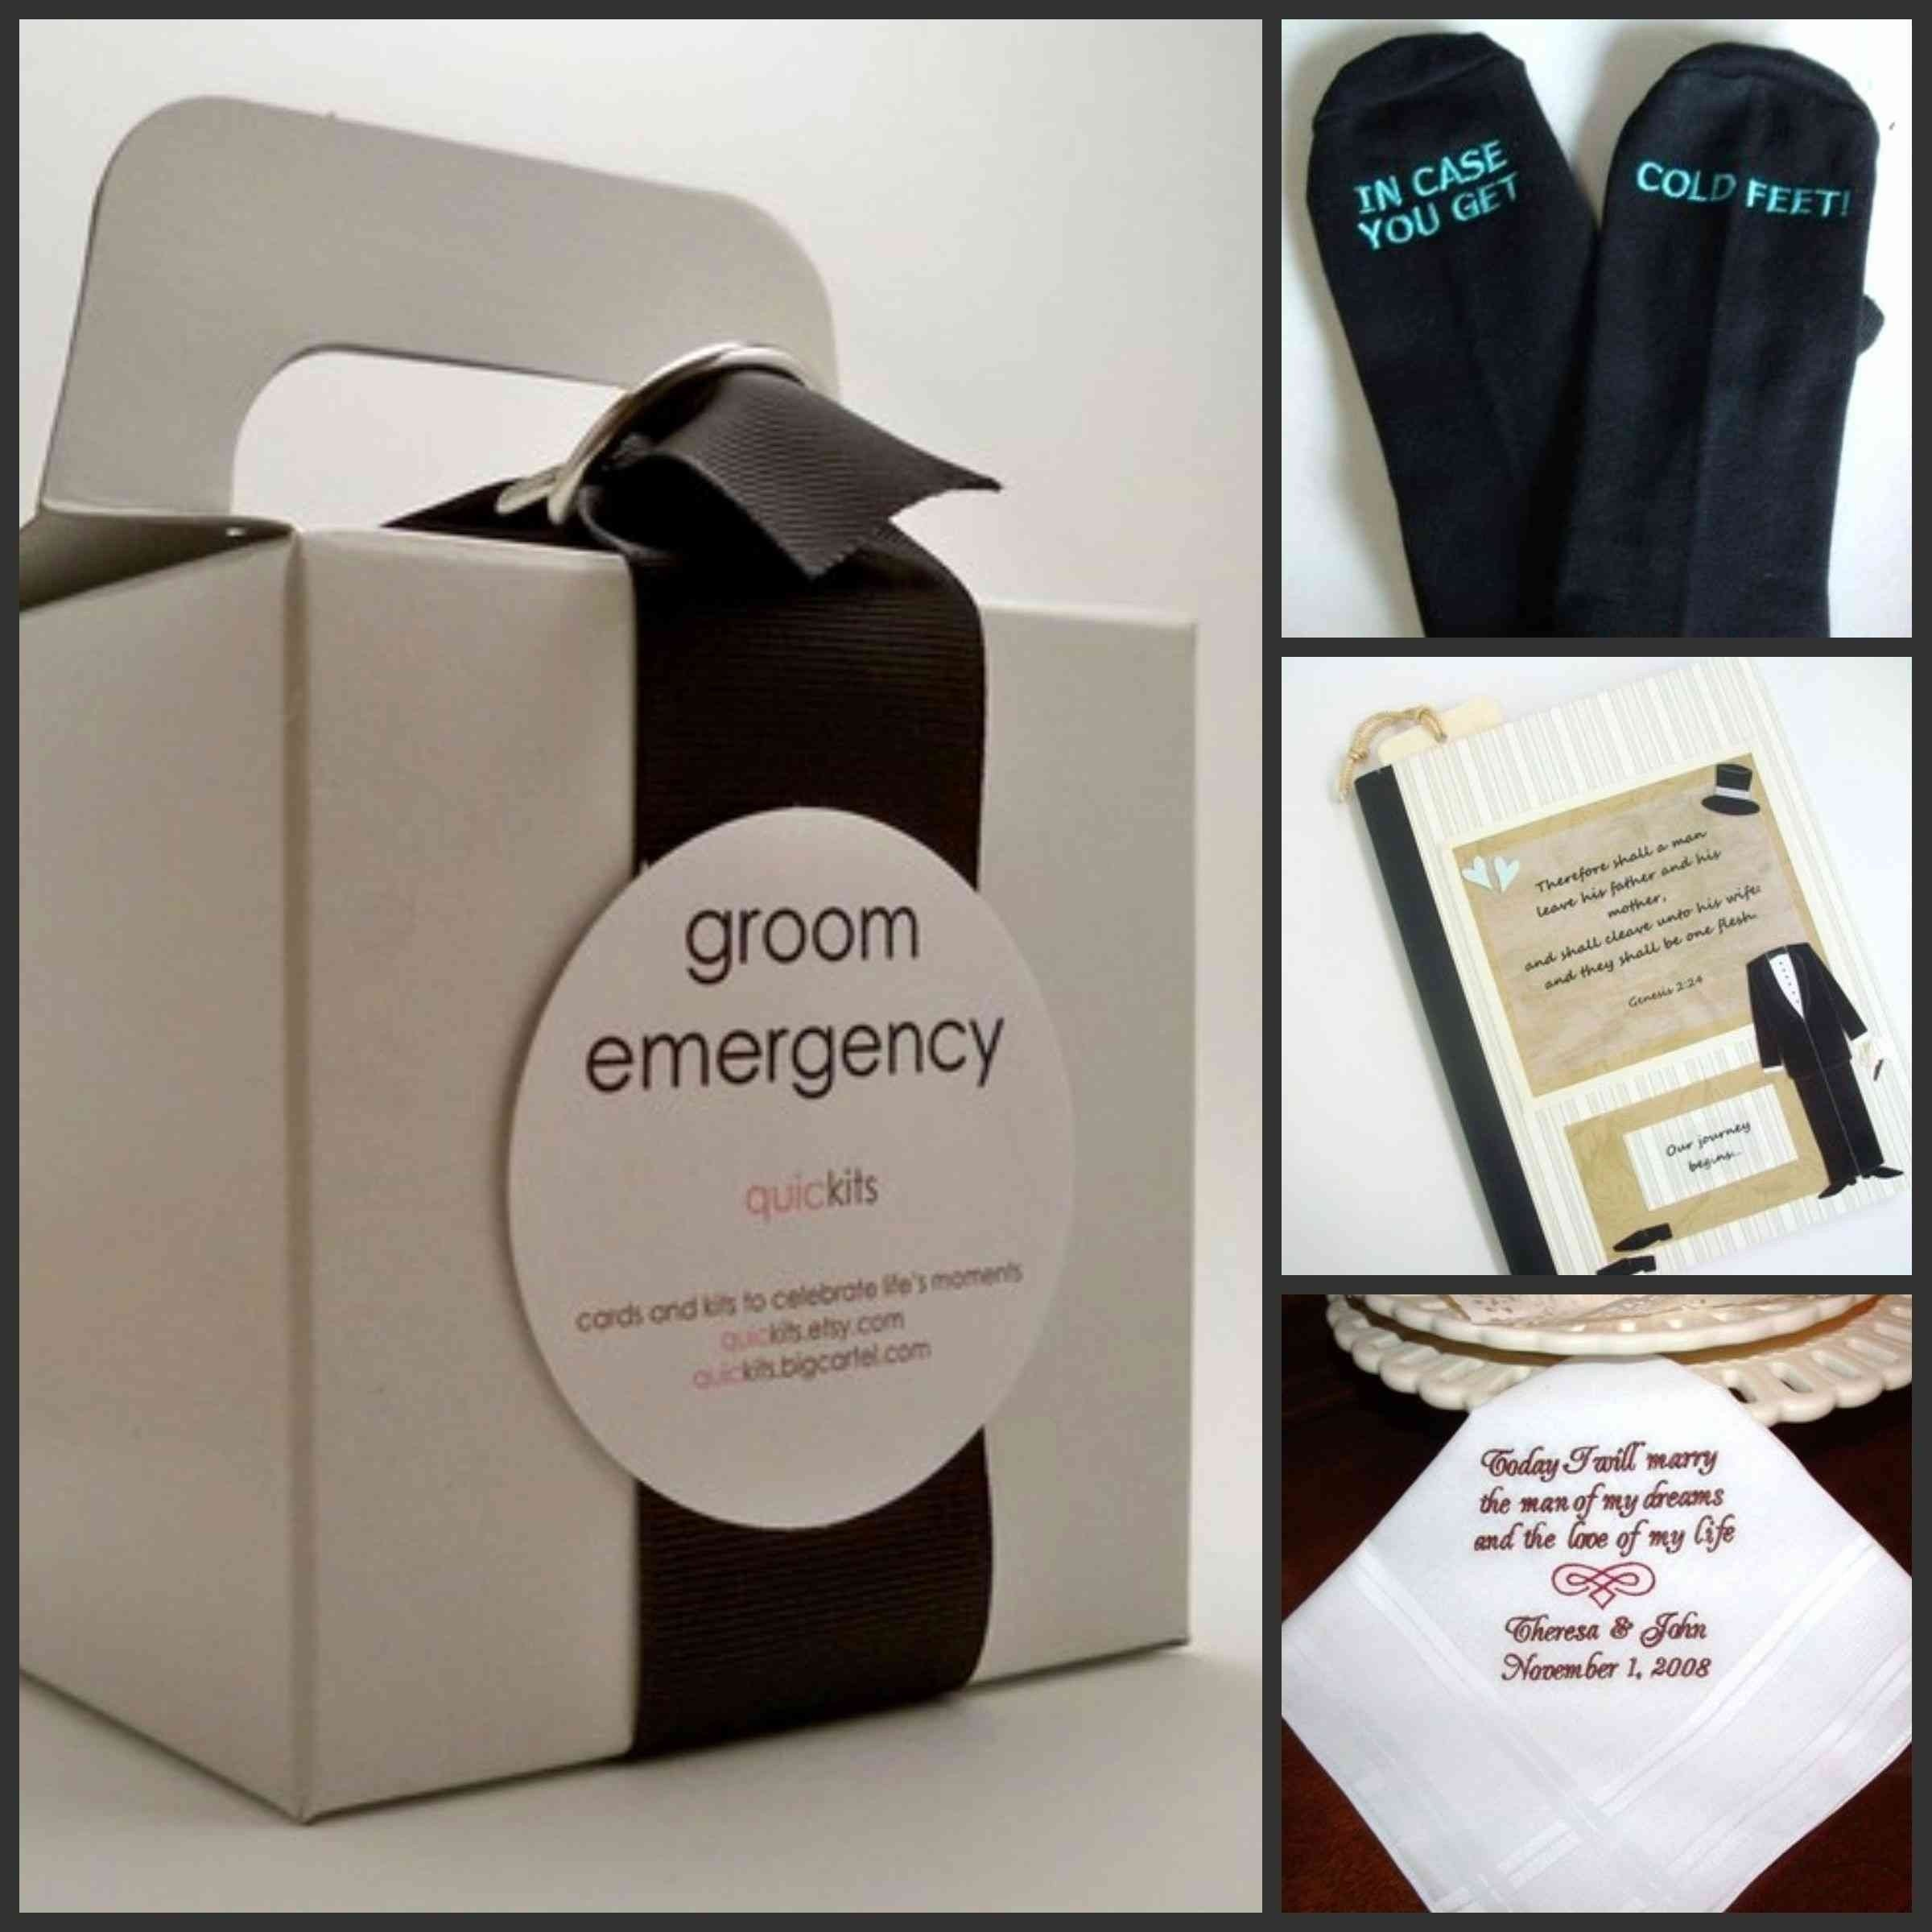 10 Perfect Gift Ideas From Bride To Groom great wedding gifts for bride and groom lovely creative gift ideas 2 2020